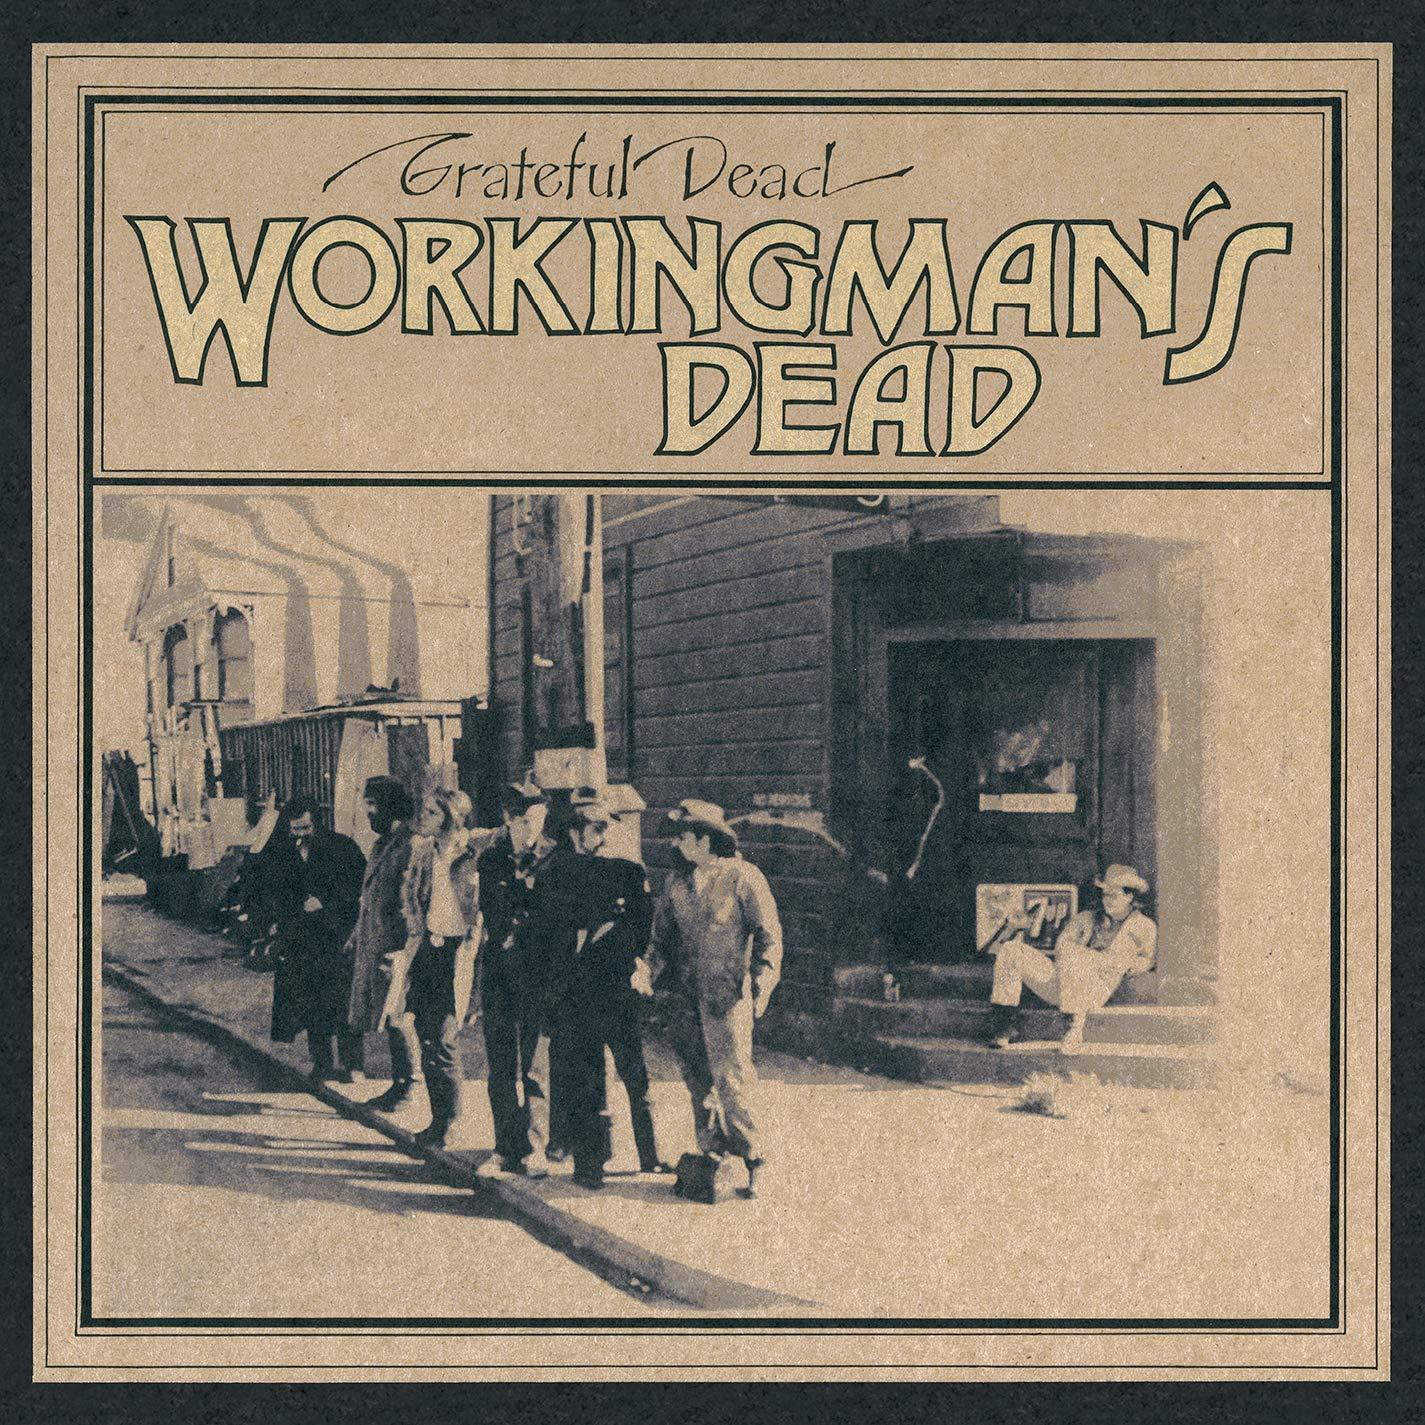 Grateful Dead - Workingman's Dead [LP] (50th Anniversary Deluxe Picture Disc Edition, remastered, limited to 10,000) - Urban Vinyl | Records, Headphones, and more.